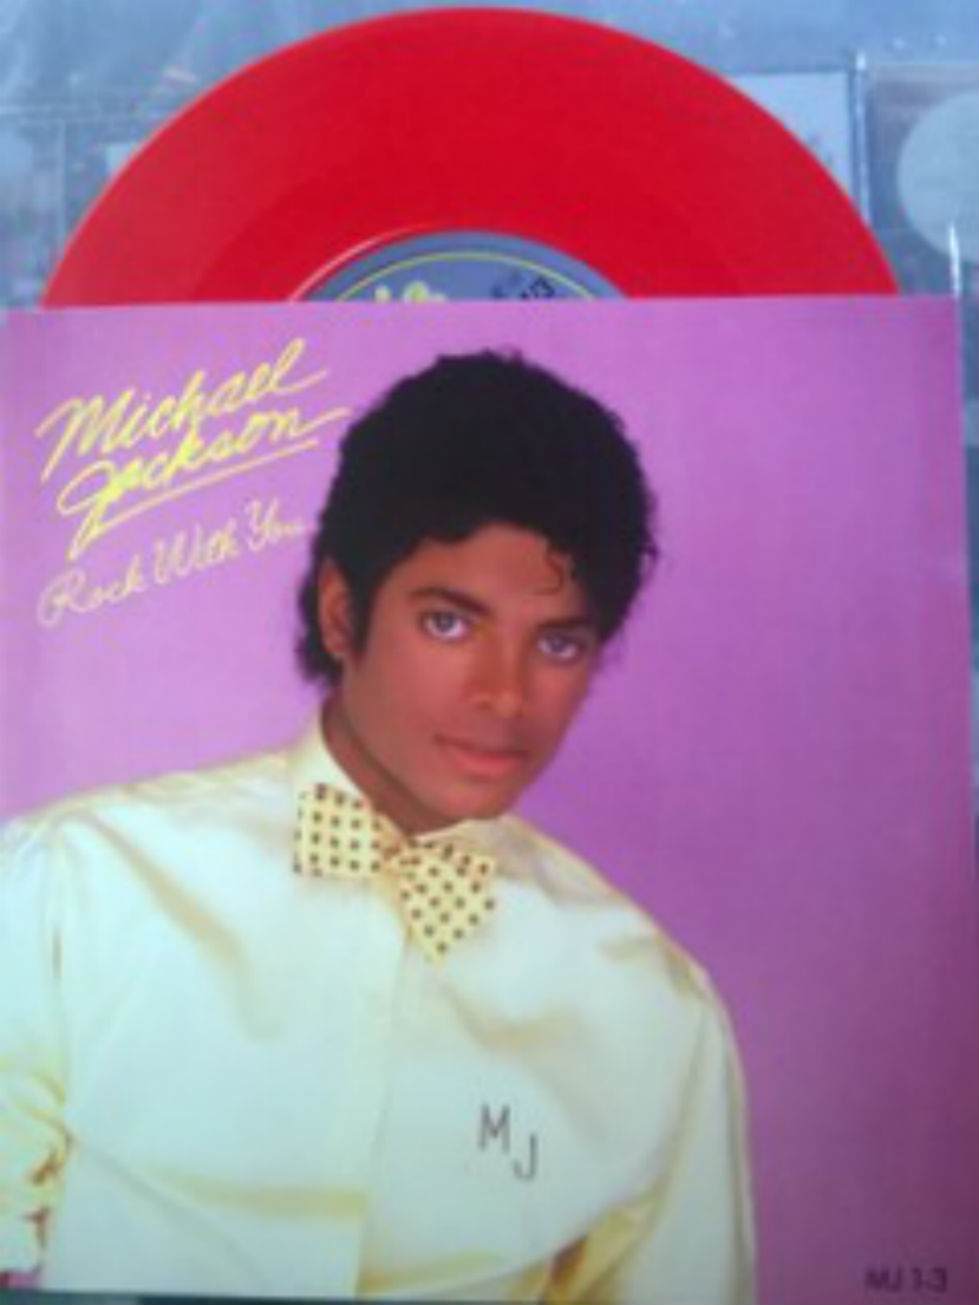 Michael Jackson Rock+With+You 7''